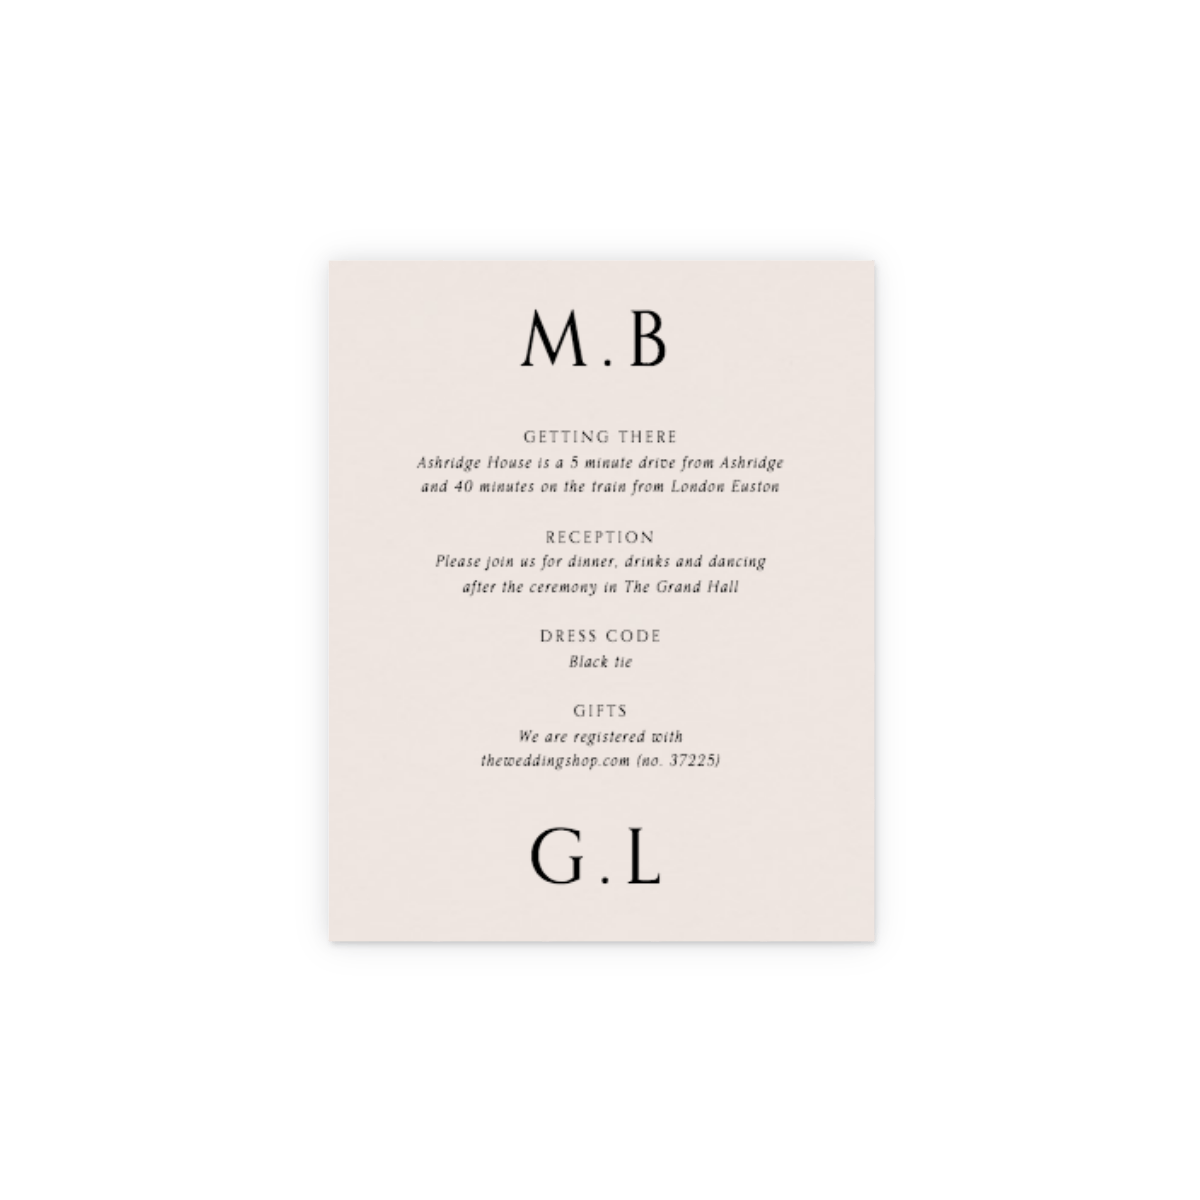 Https%3a%2f%2fwww.papier.com%2fproduct image%2f61478%2f9%2fclassical monogram 14630 info card 1549036784.png?ixlib=rb 1.1